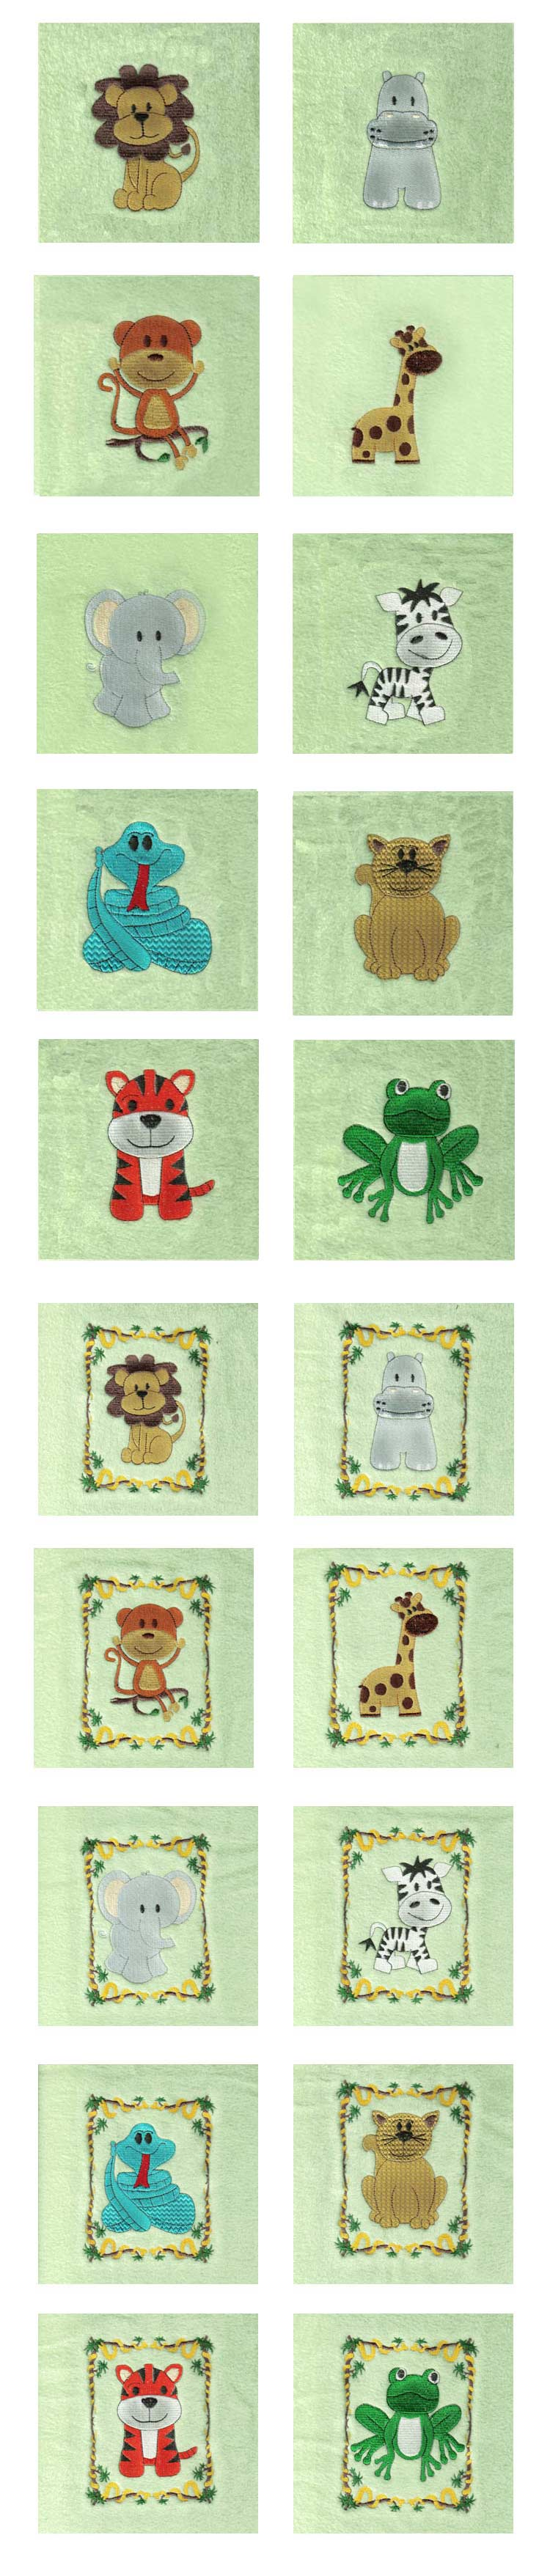 Jungle Quilt Blocks Embroidery Machine Design Details